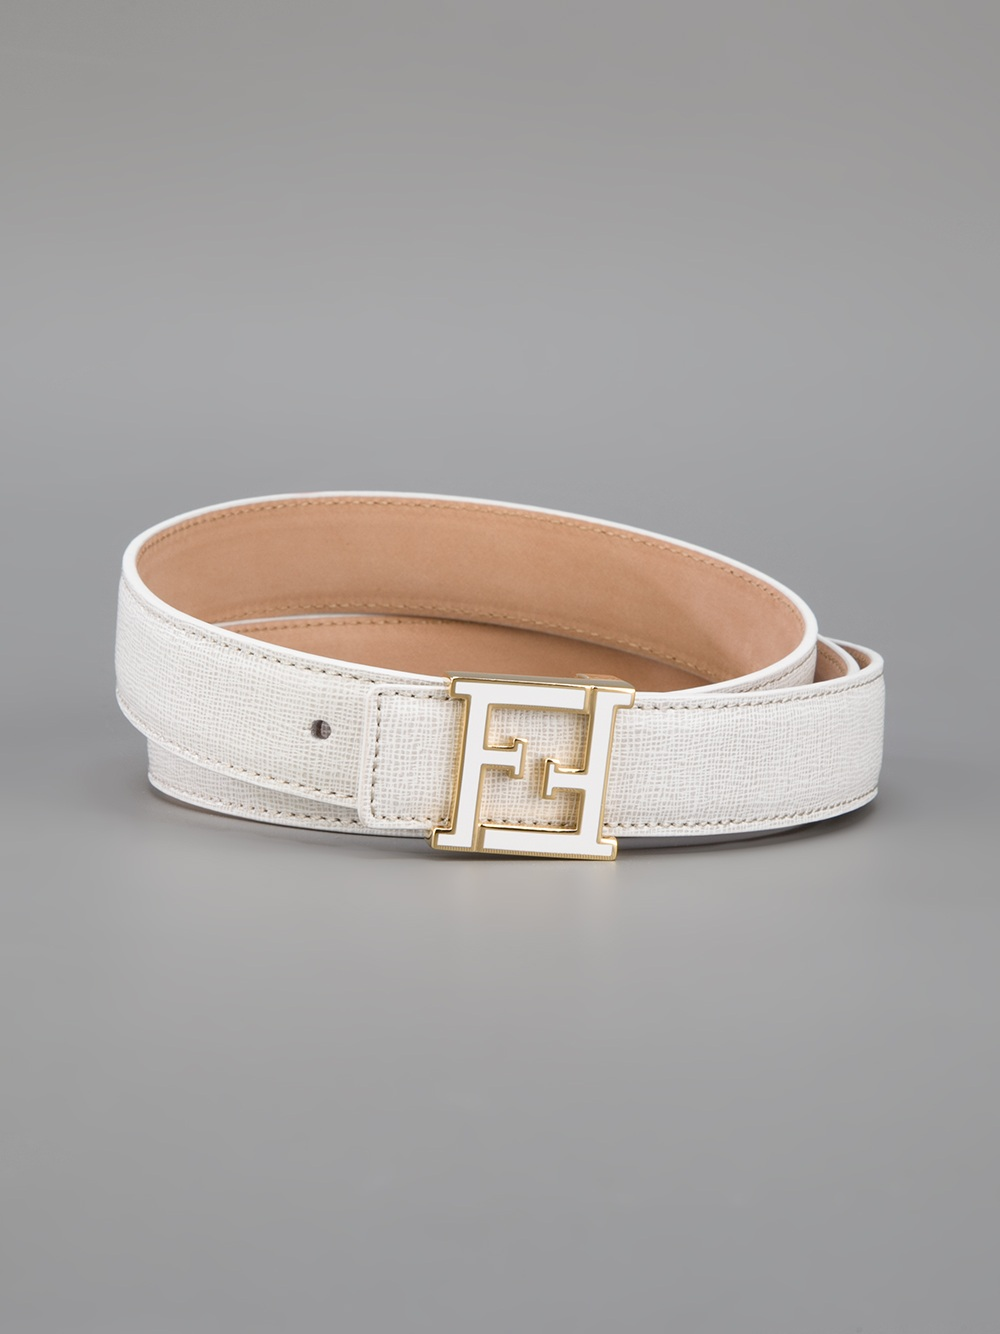 fendi logo belt in white lyst